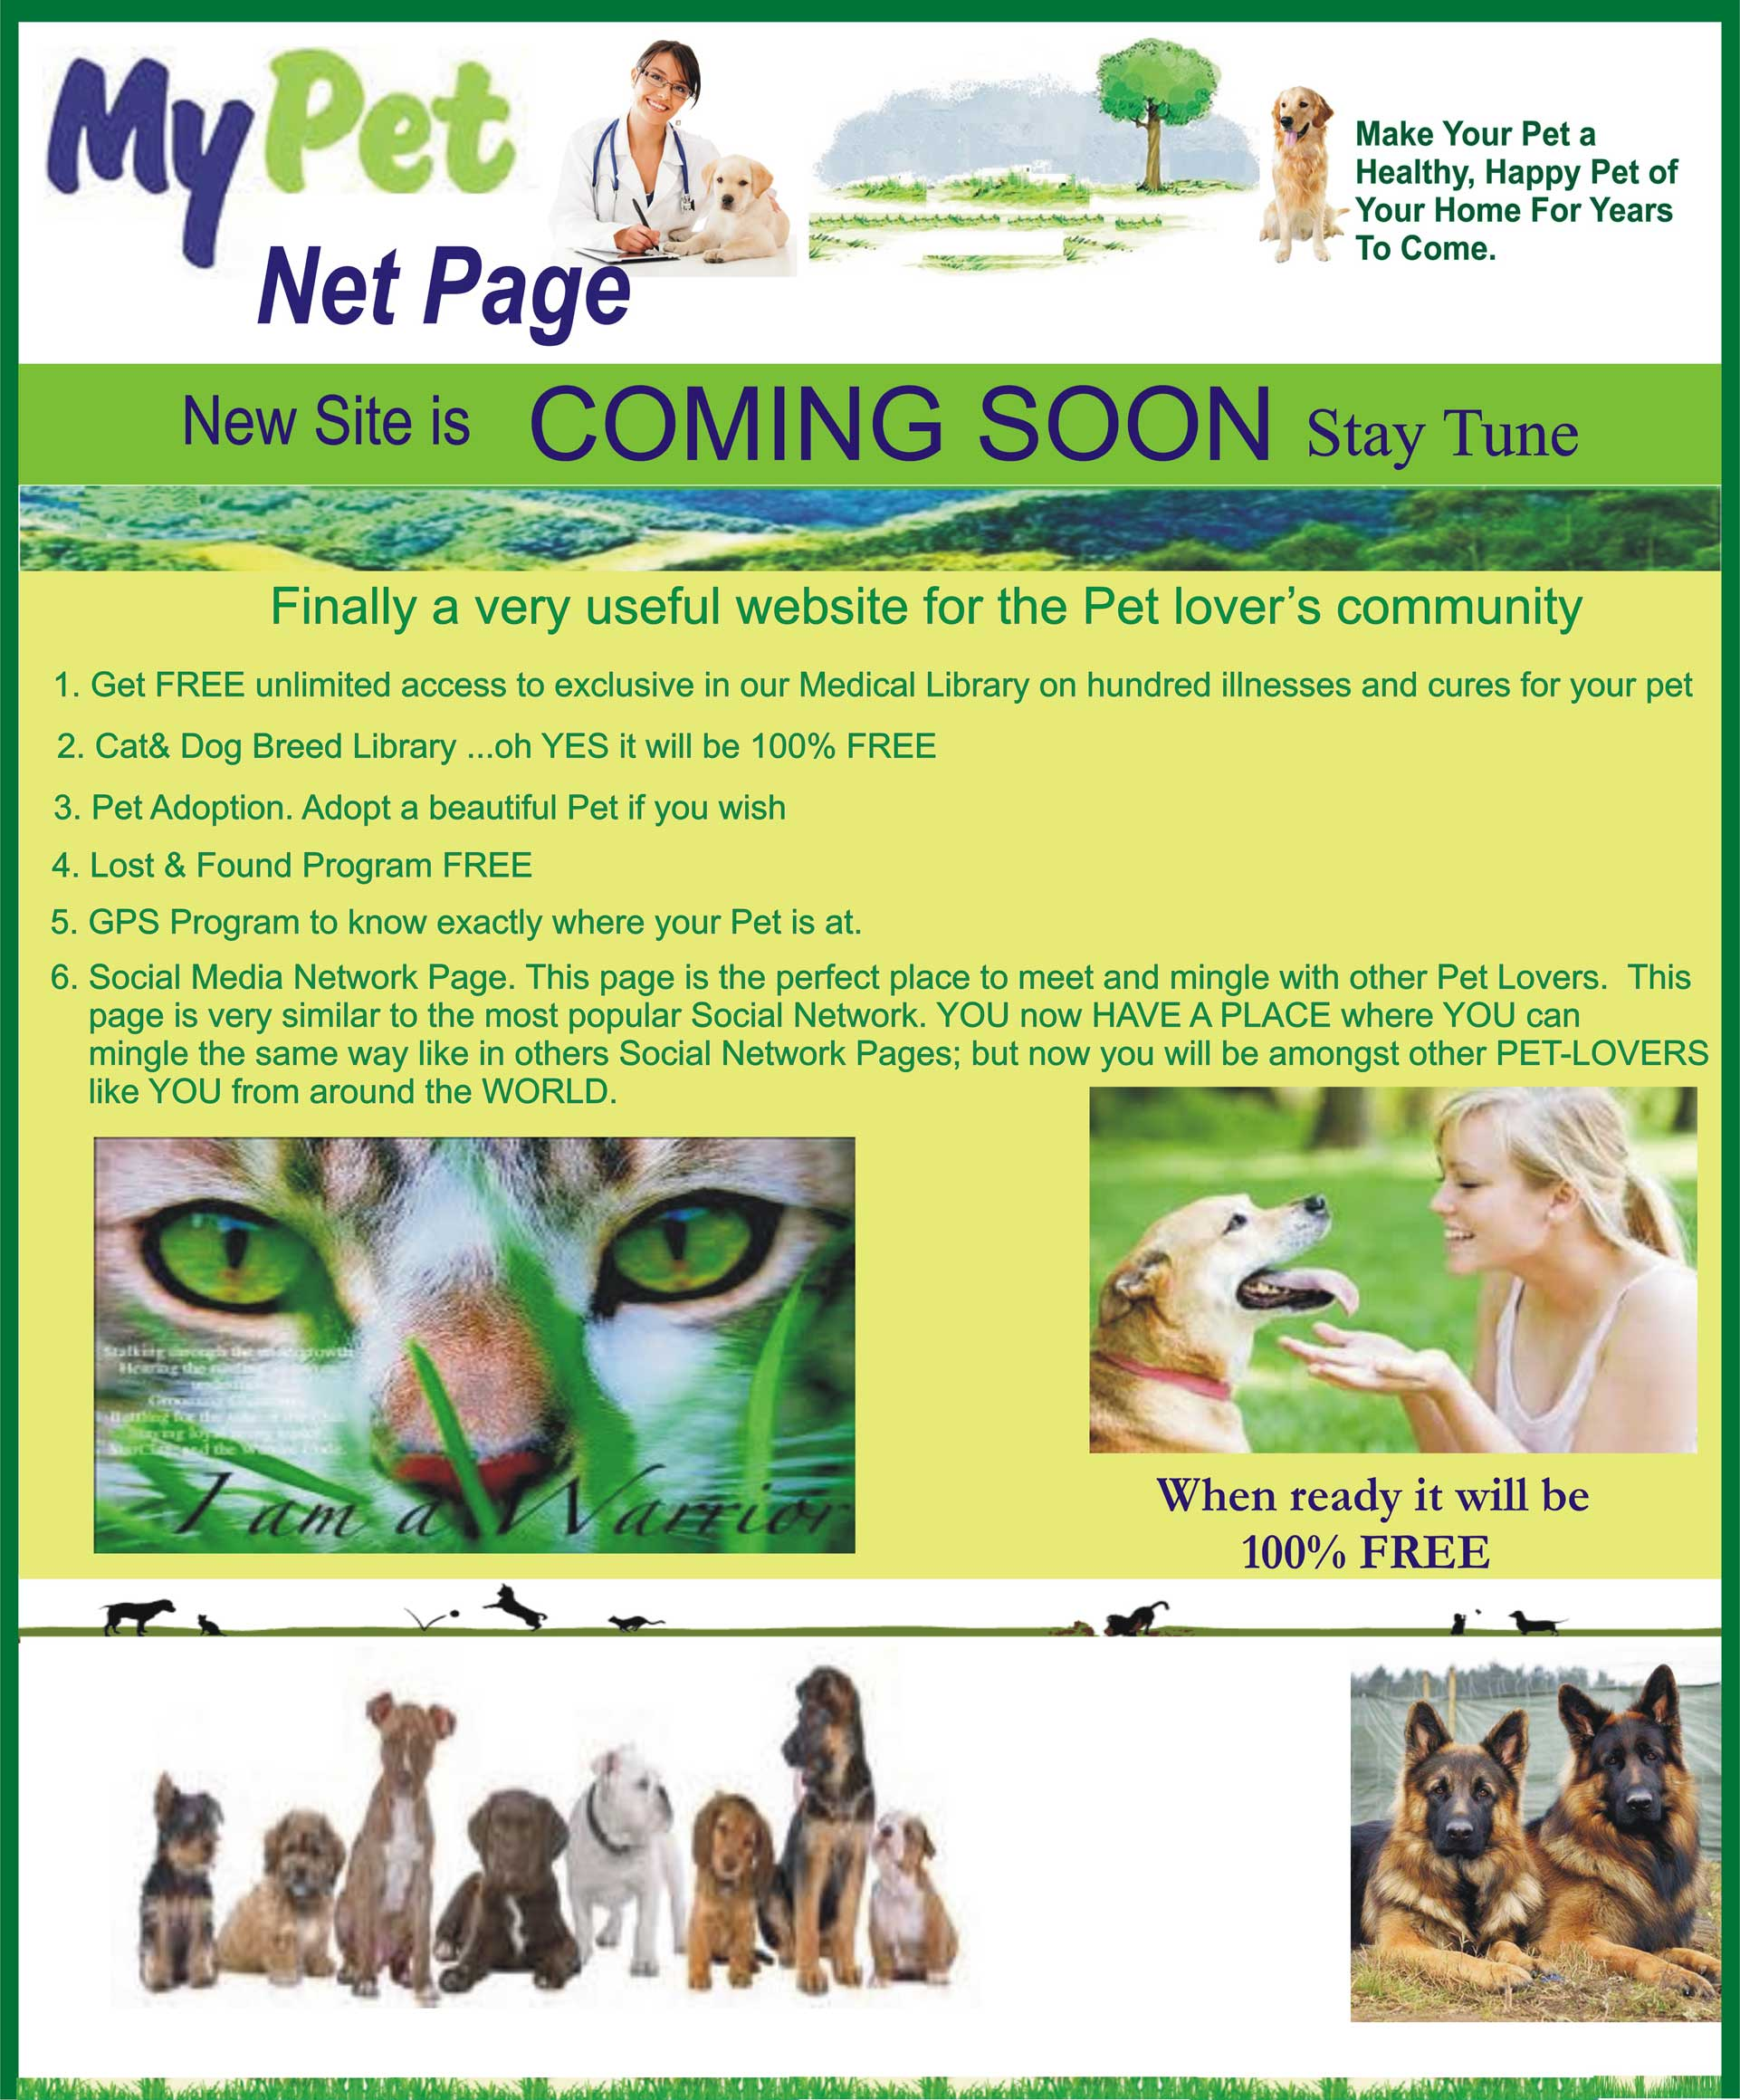 My Pet Net Page